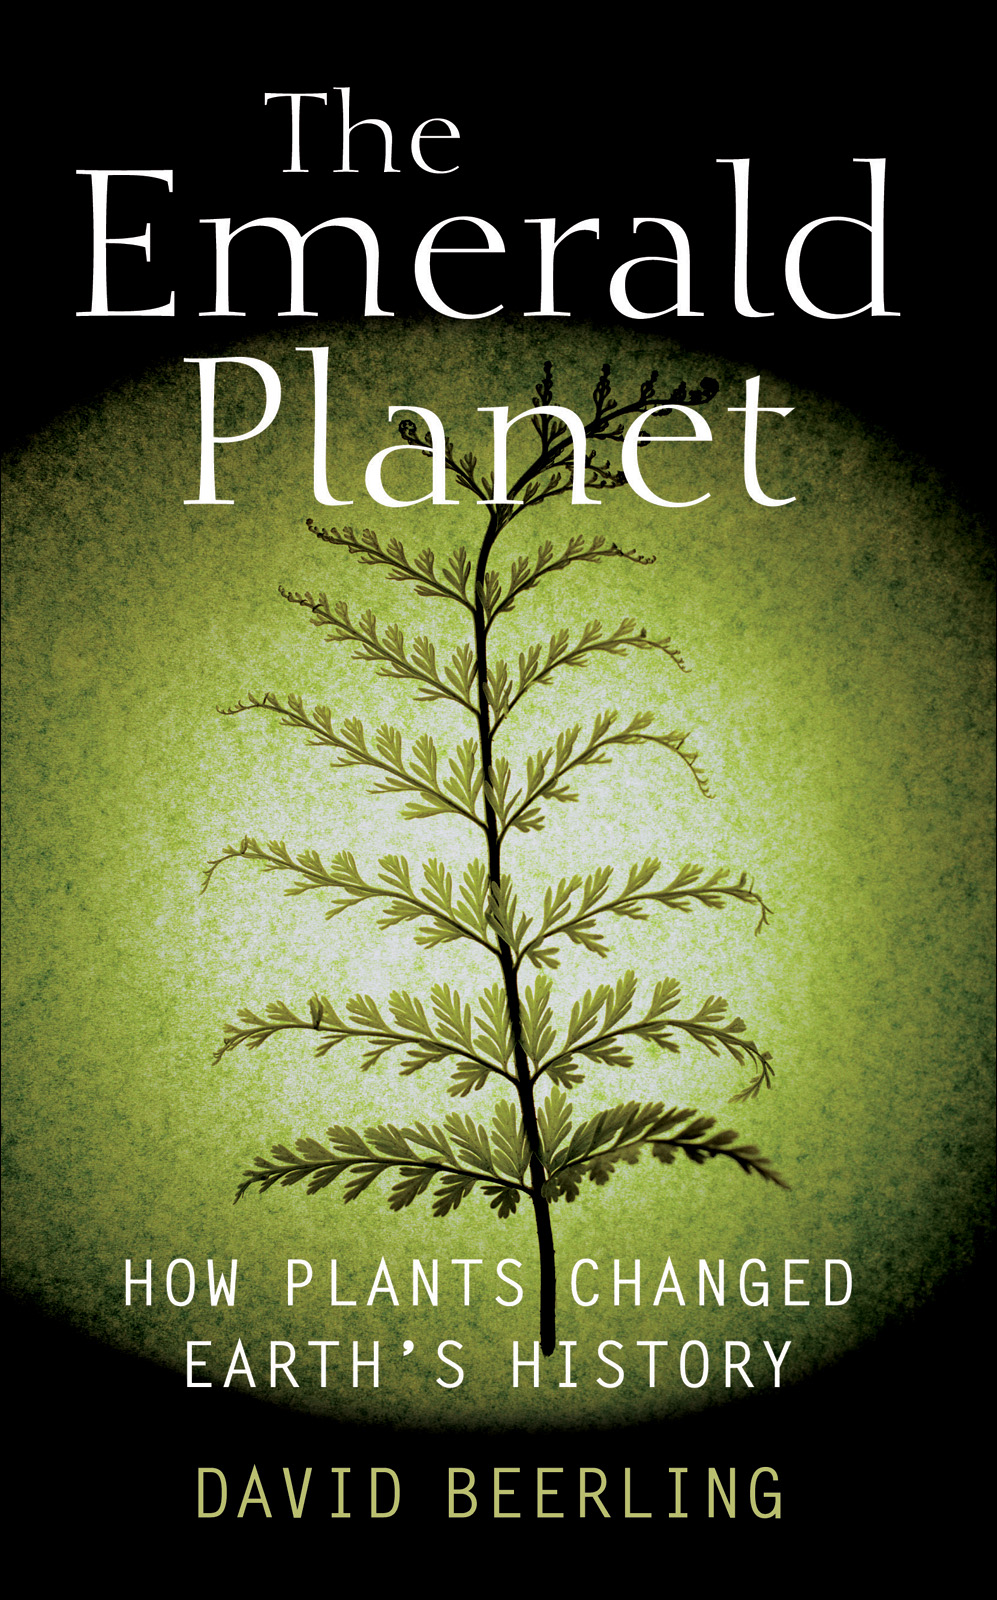 The Emerald Planet:How plants changed Earth's history